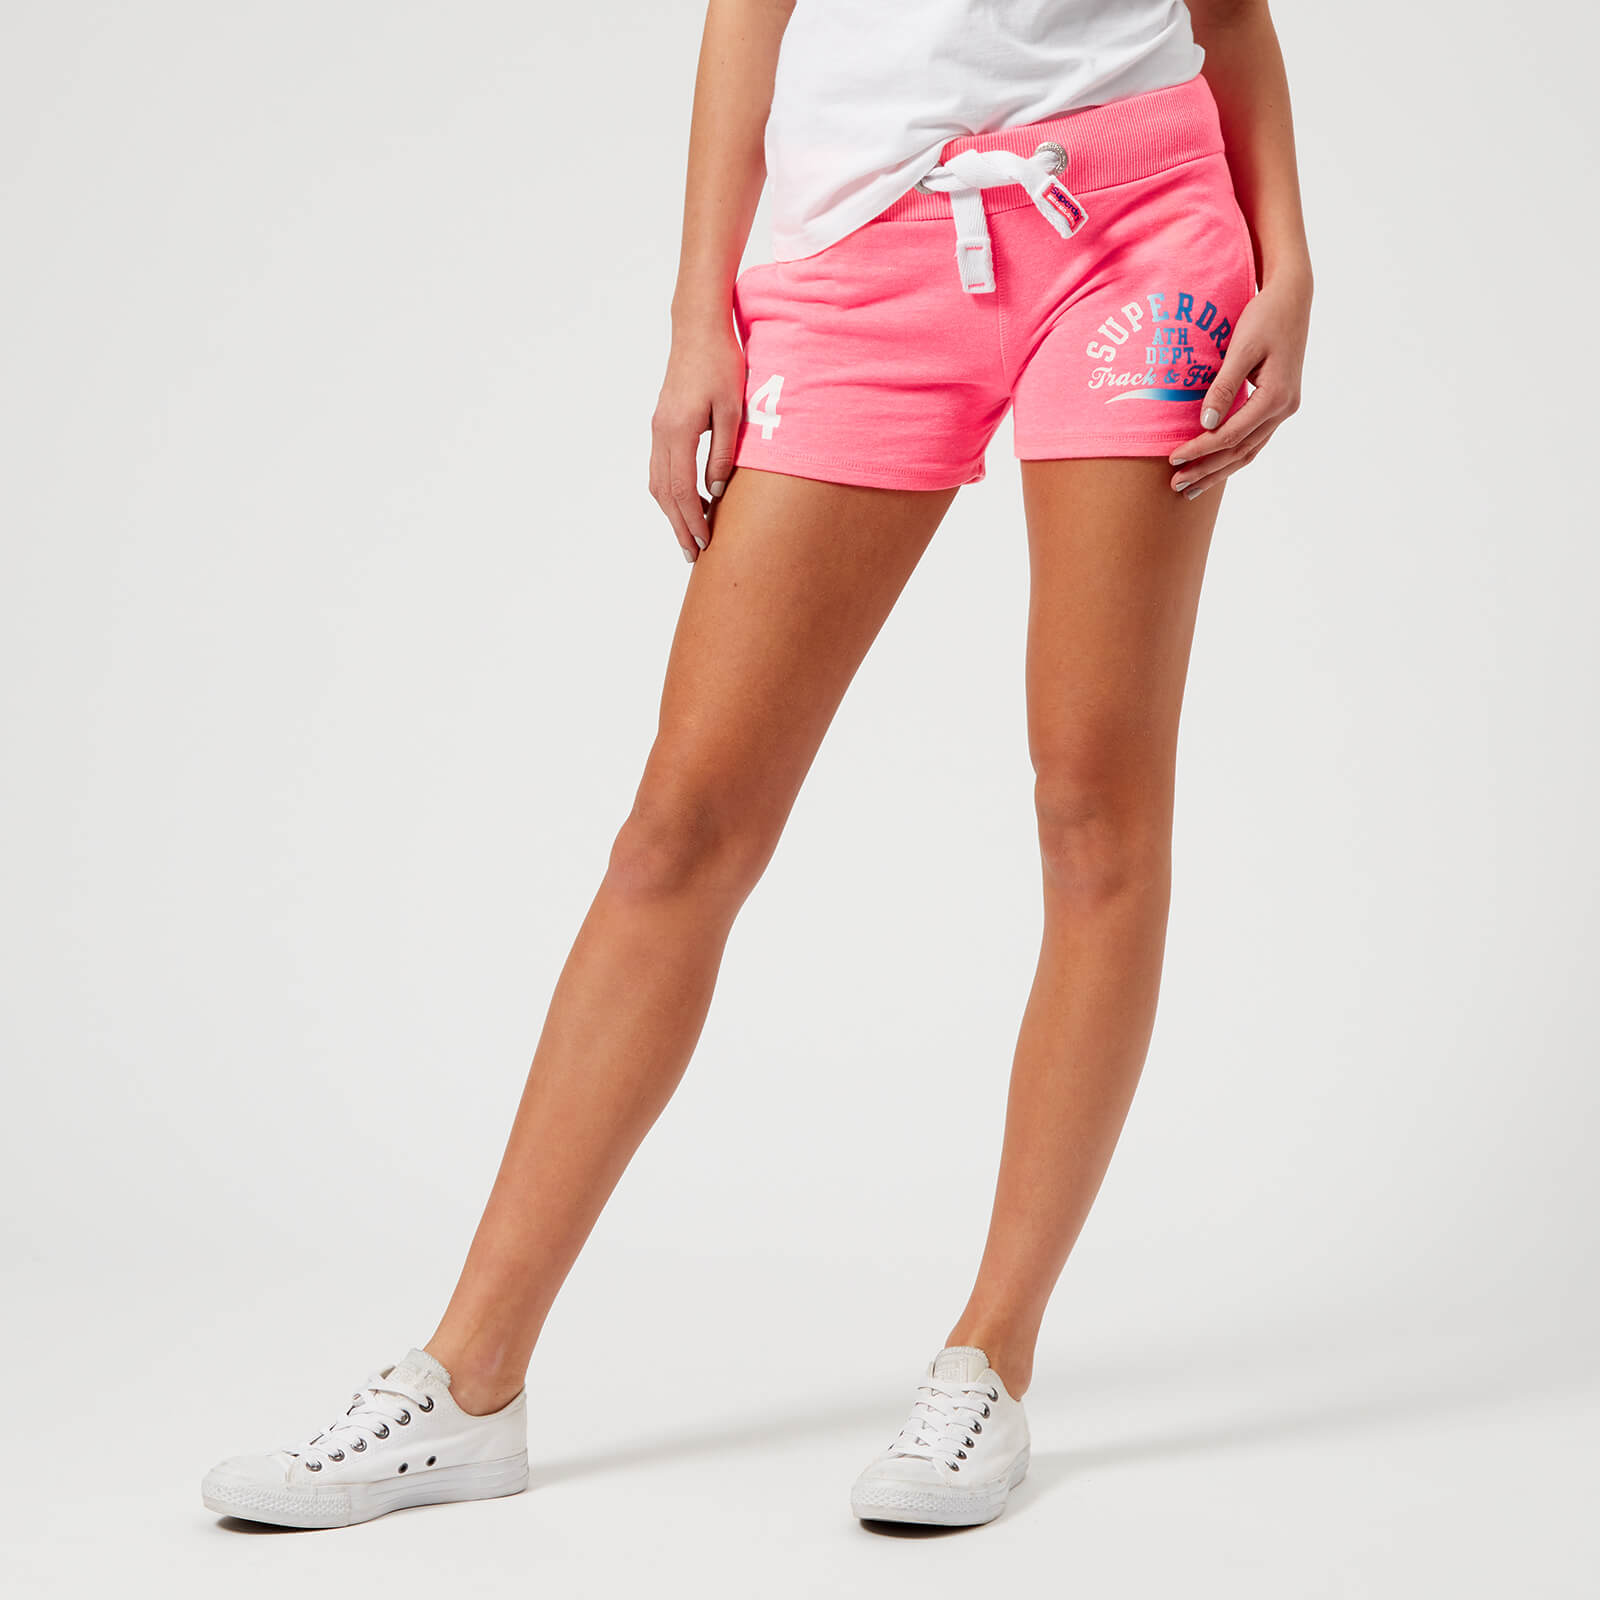 98848a3897eca3 Superdry Women's Track & Field Lite Shorts - Casette Pink Snowy Womens  Clothing | TheHut.com